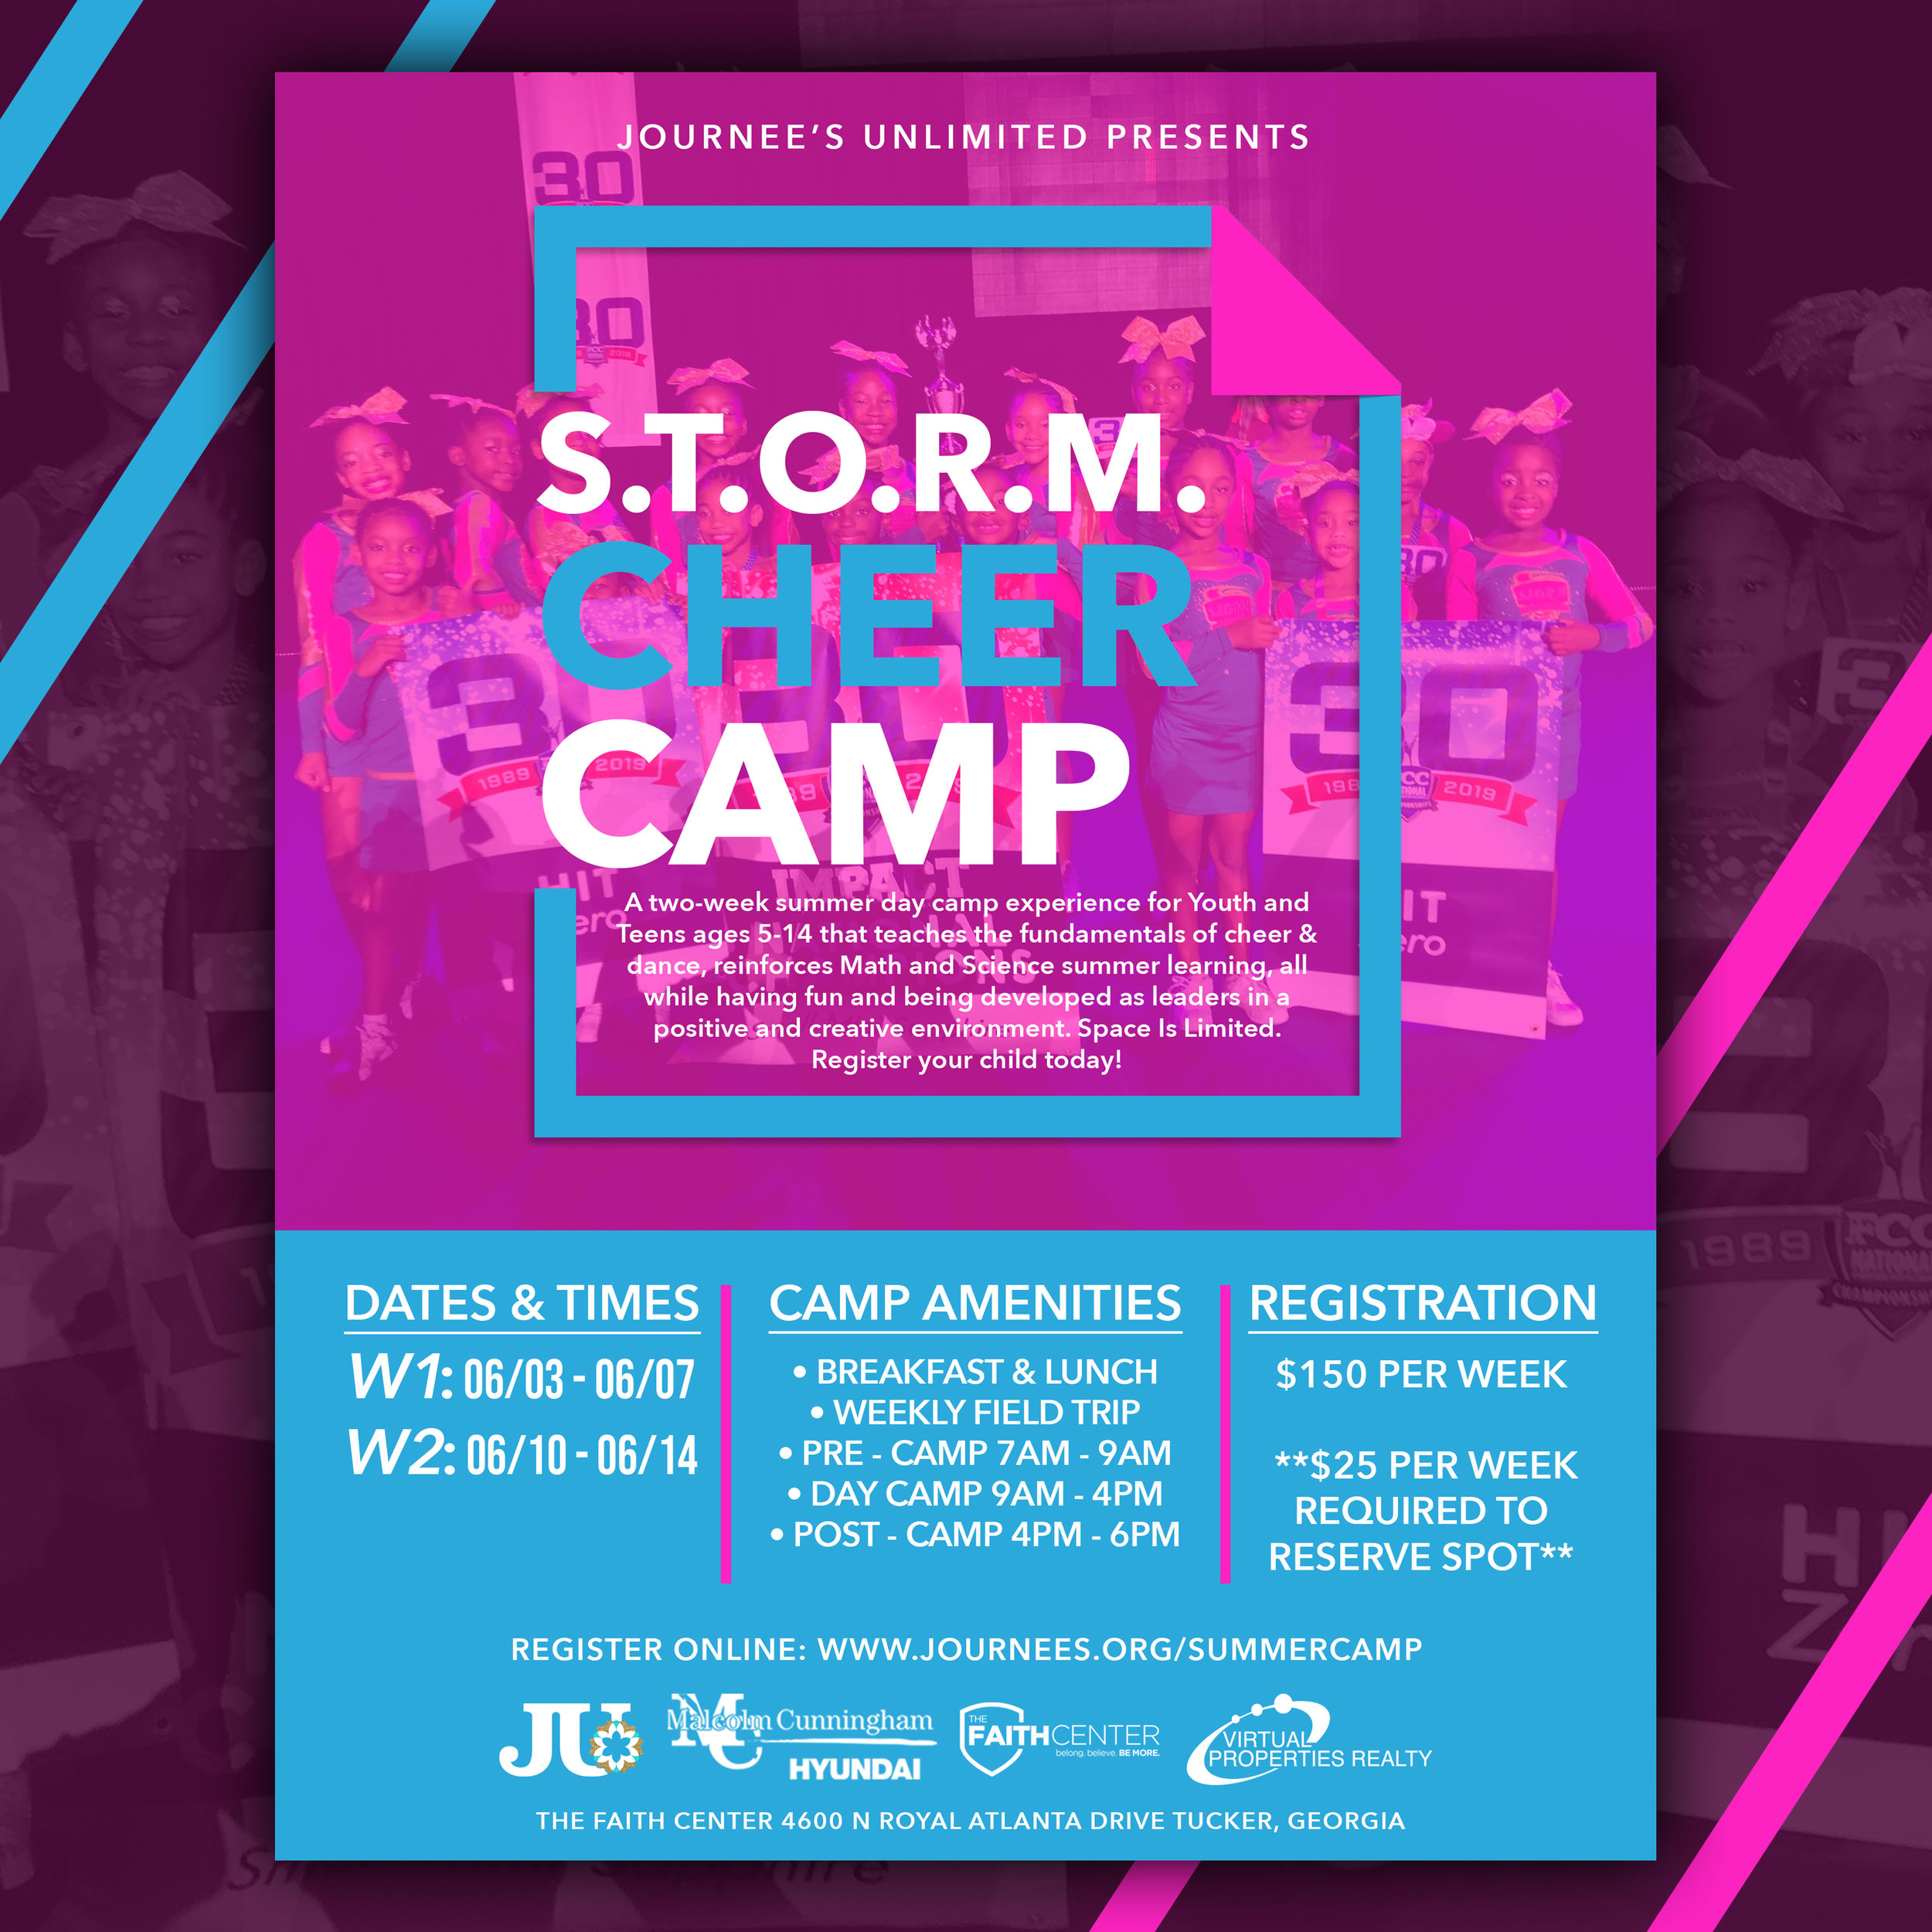 S T O R M Cheer Camp June 10th - 14th — Journee's Unlimited Inc